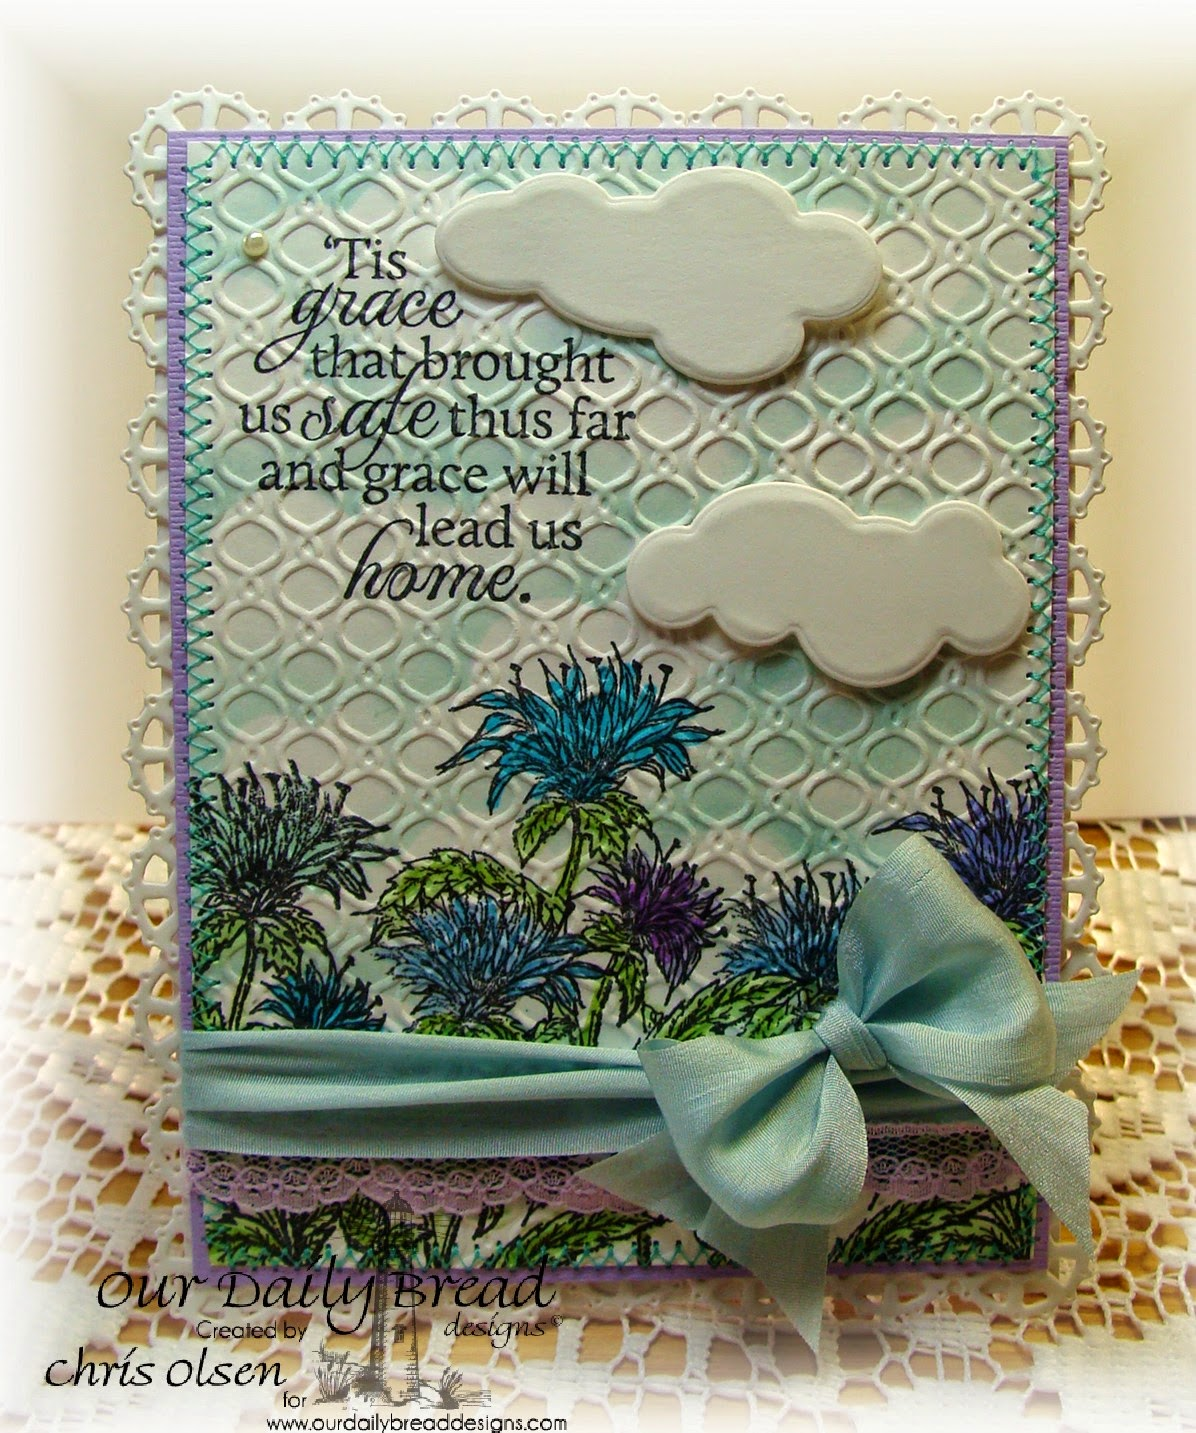 Our Daily Bread Designs, How Sweet the Sound, Bee Balm, Raindrops and Cloud Dies, Layered Lacey Squares, designed by Chris Olsen